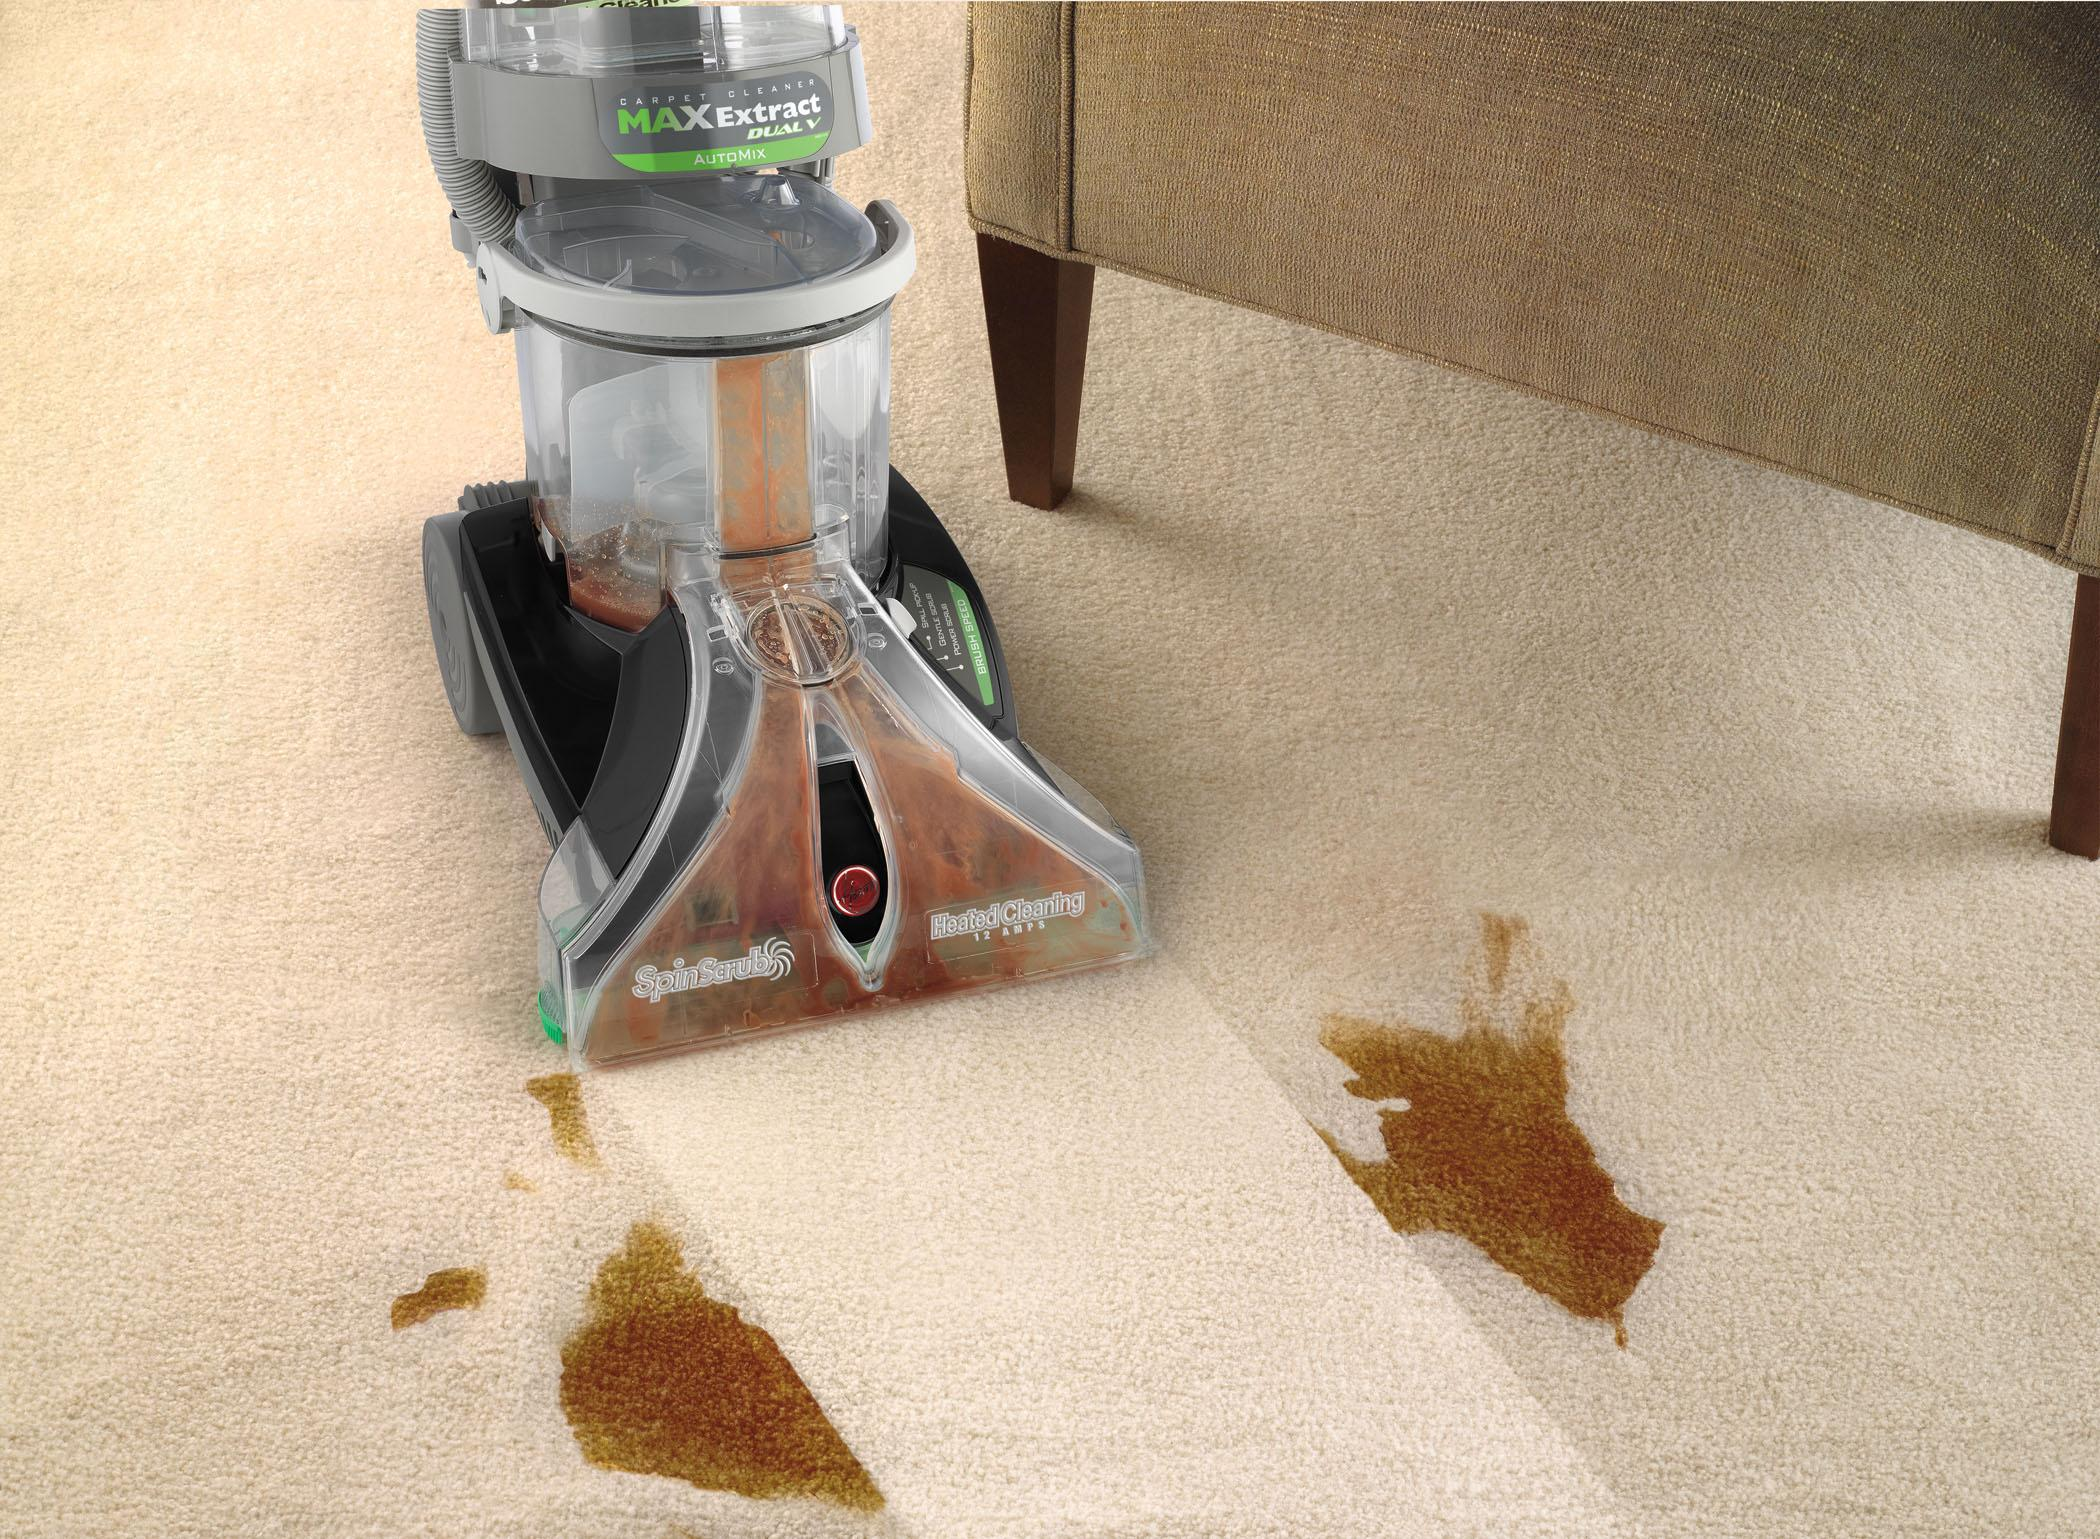 Hoover Carpet Cleaner Max Extract Dual V